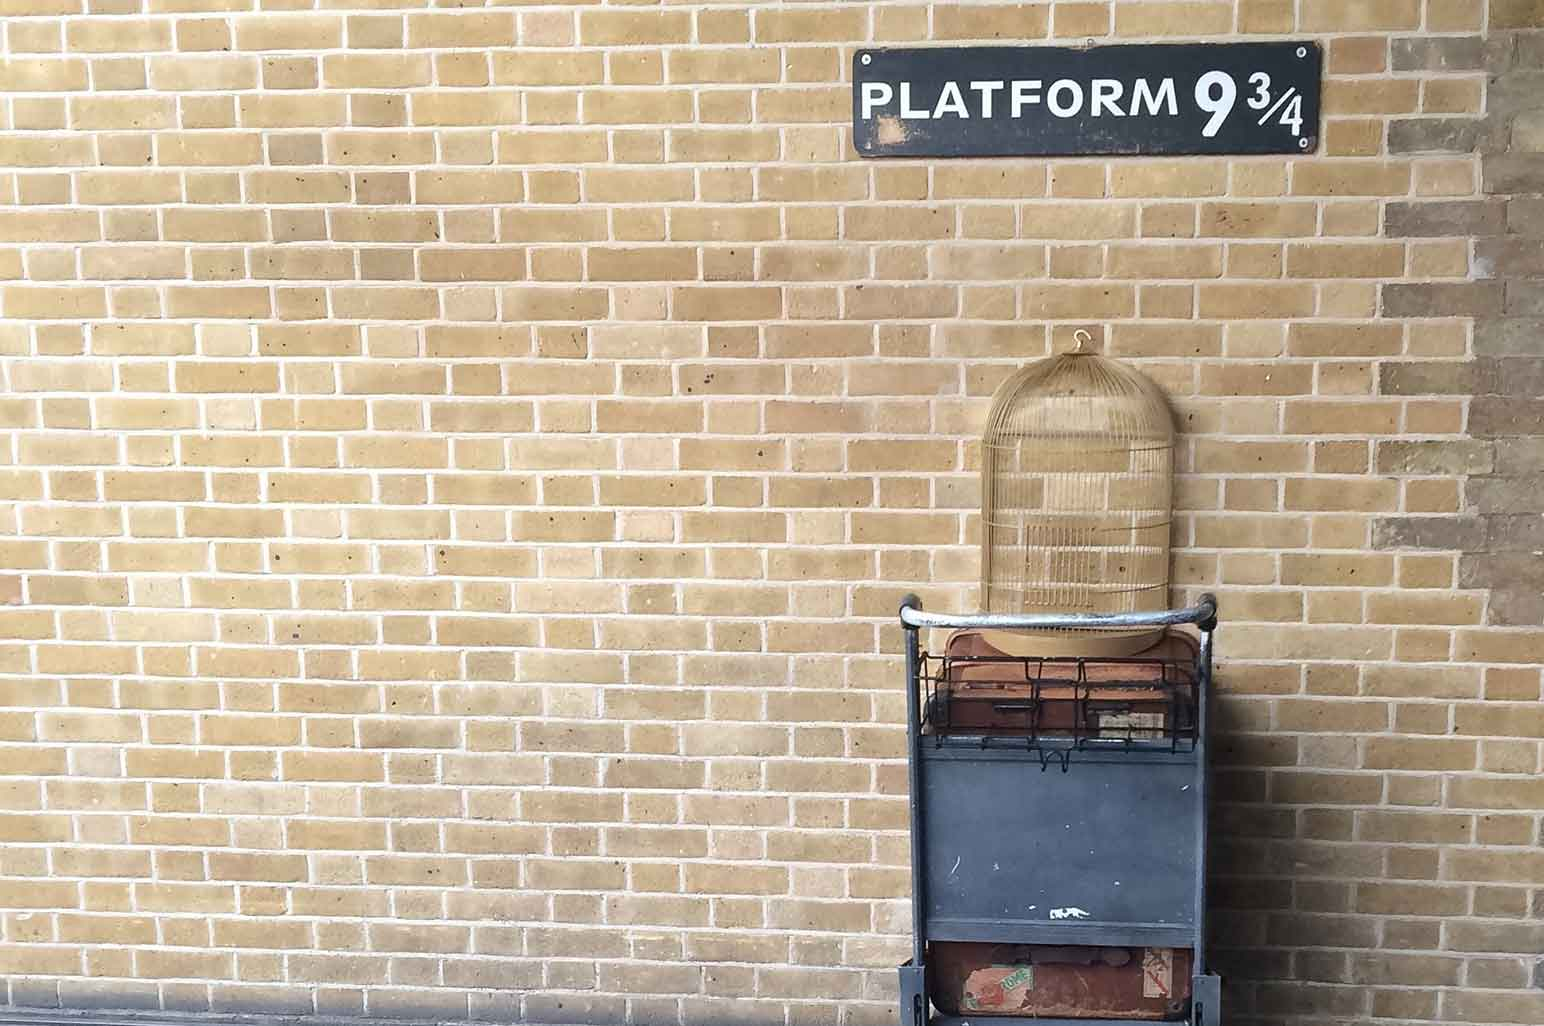 9 Harry Potter Destinations You Can Visit In Real Life - Platform 9¾